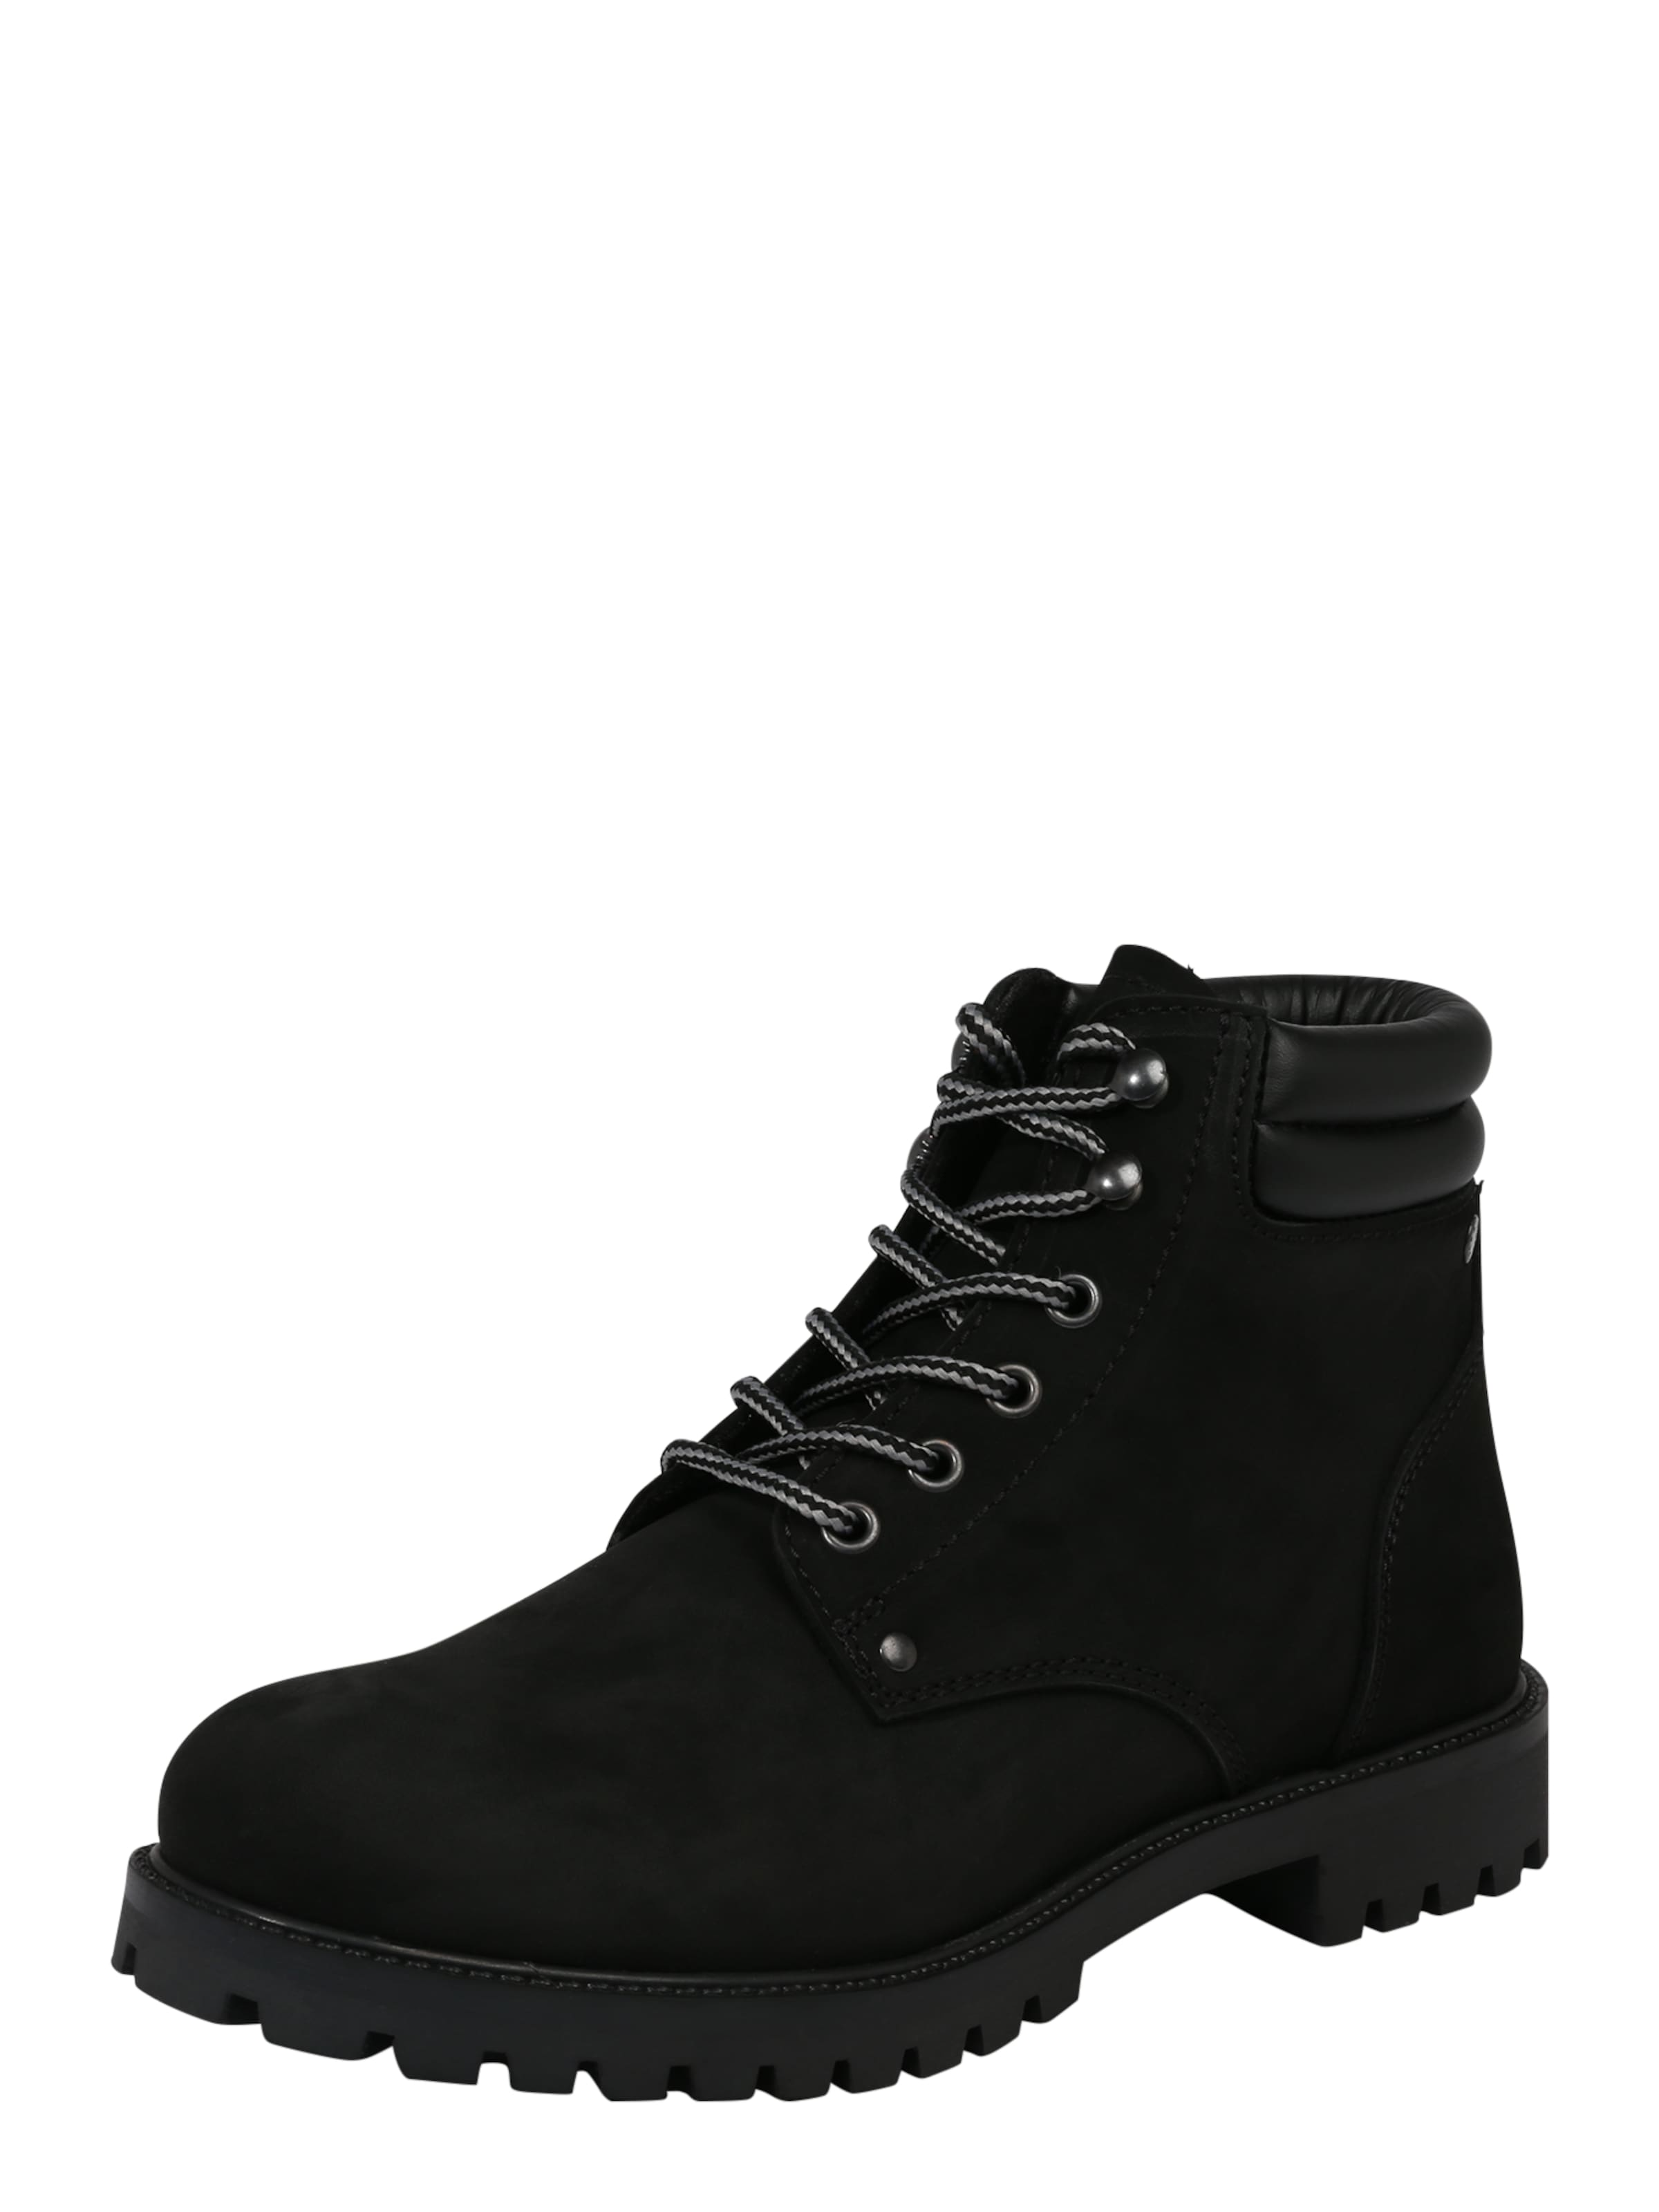 Jackamp; 'jfwstoke' In Schwarz Stiefel Jones nk8wOPN0ZX